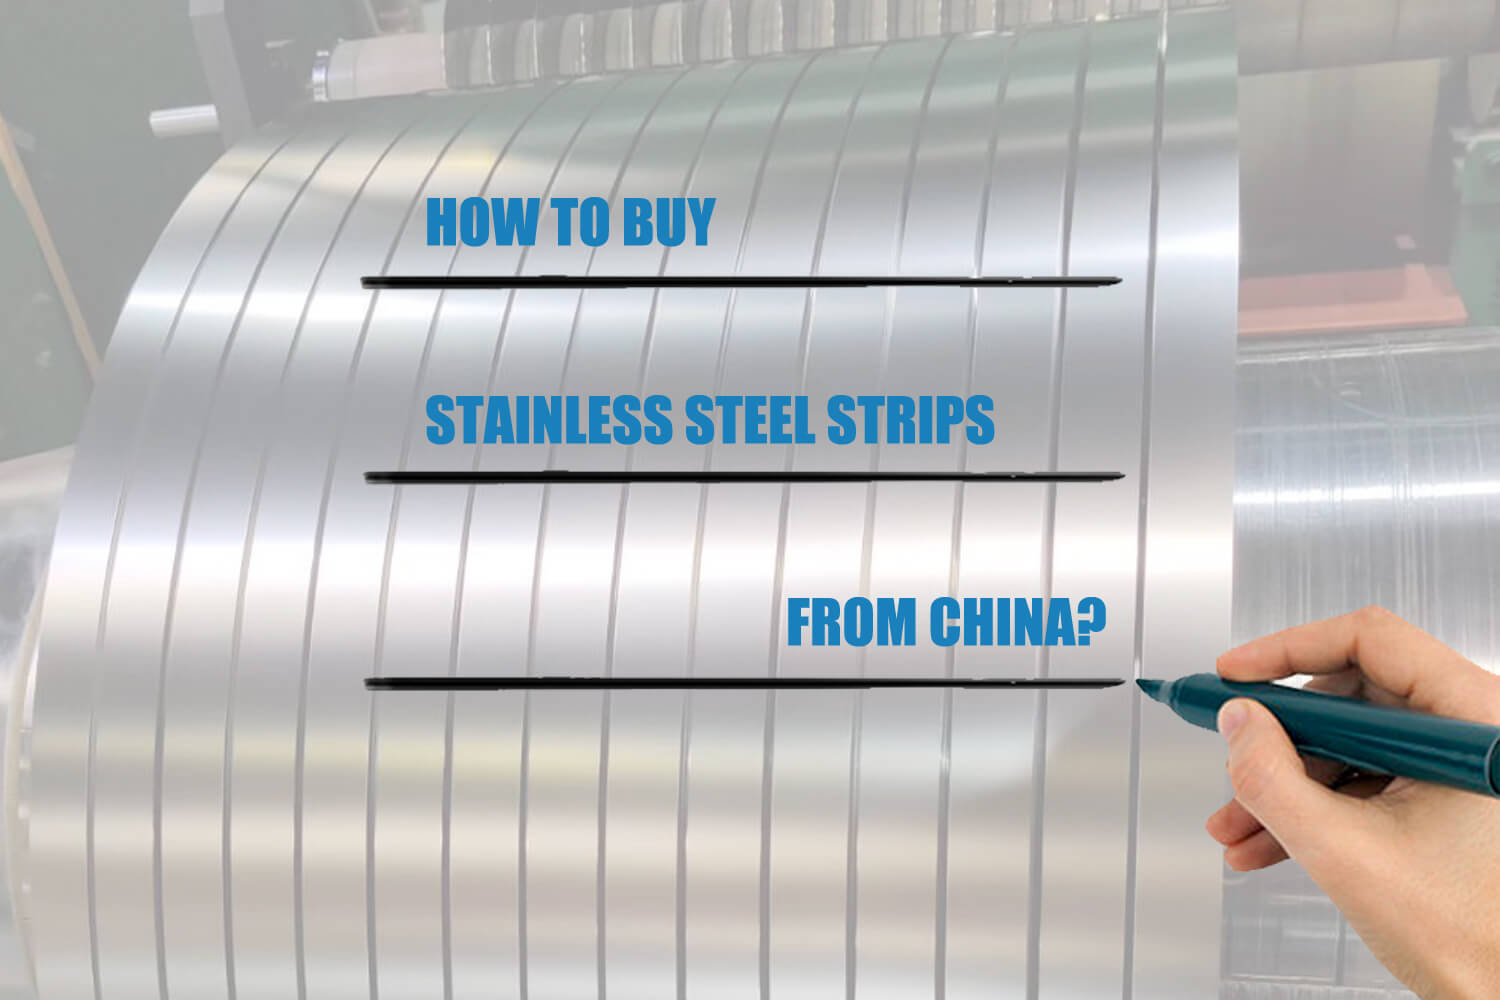 buy-stainless-steel-strips-from-china